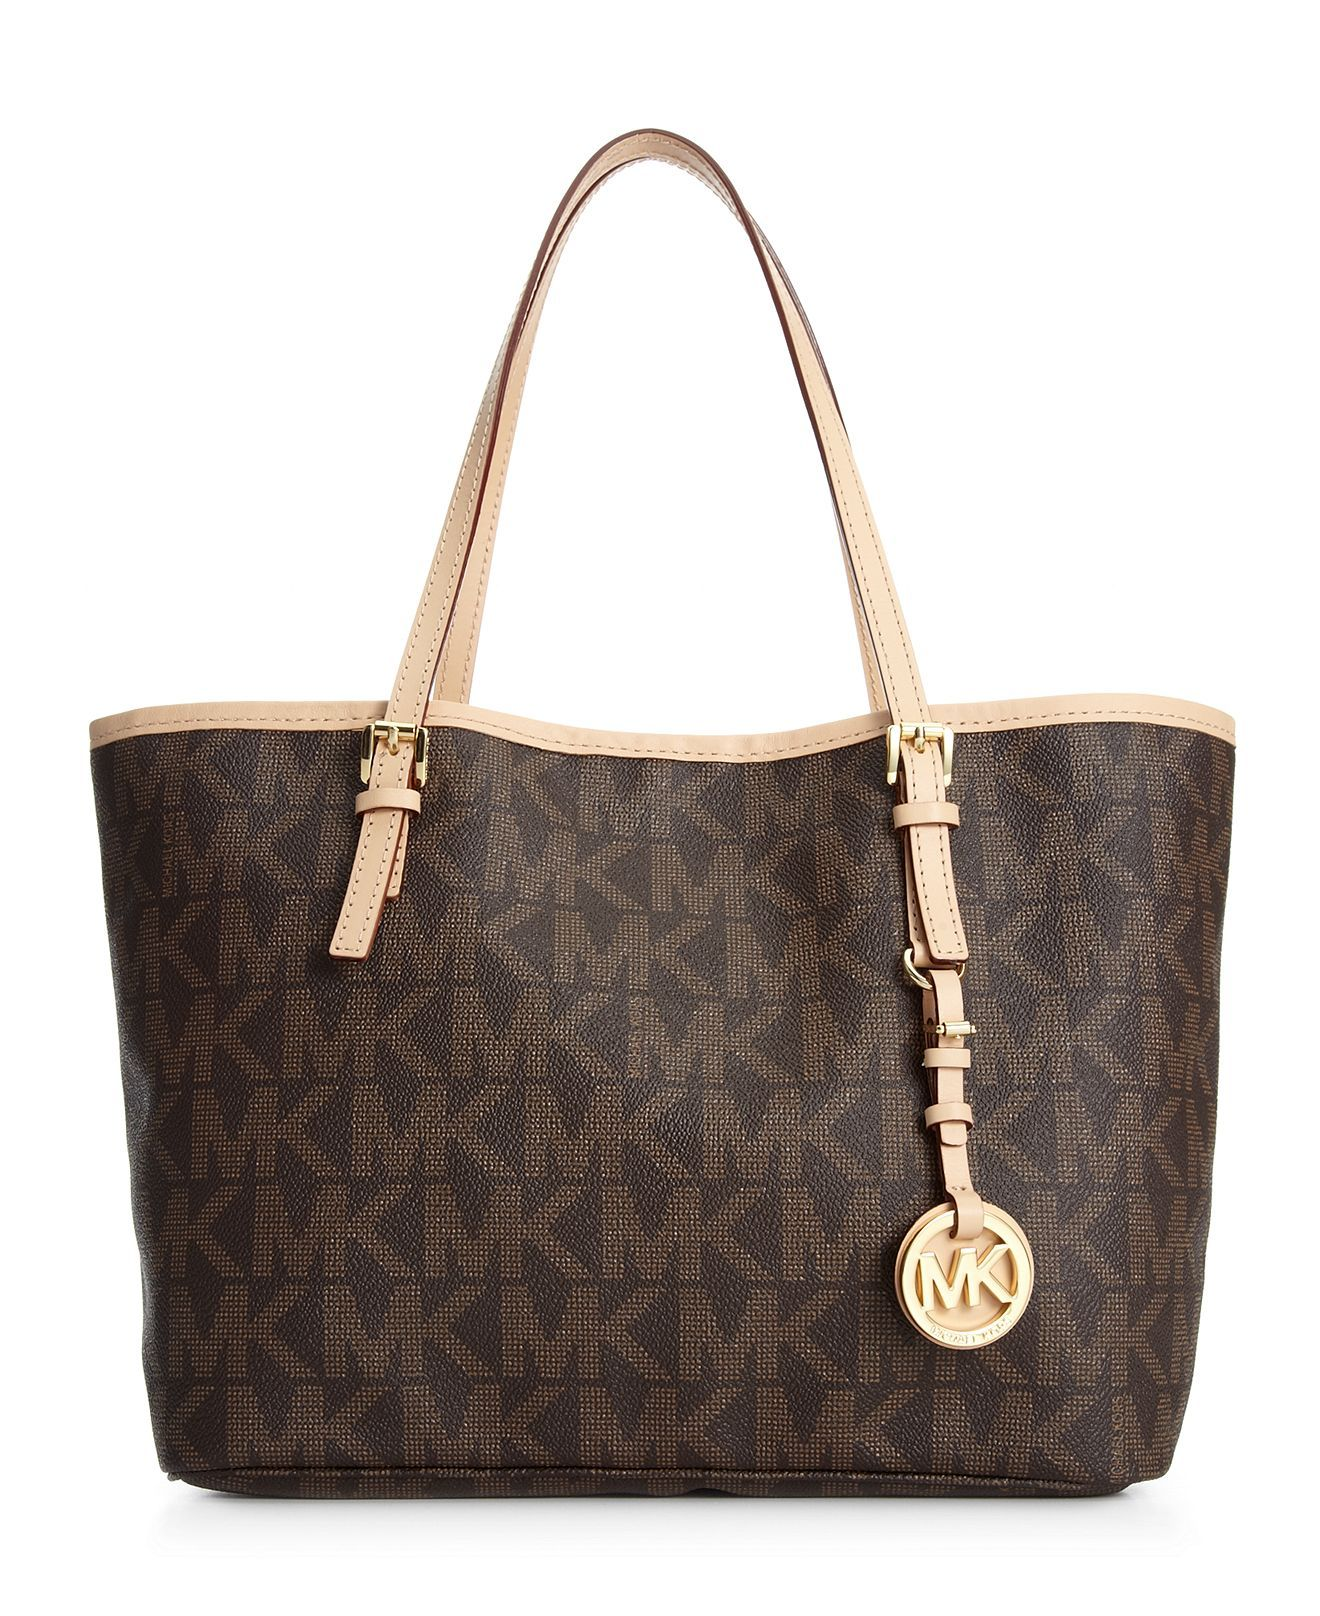 3463938777f7 MK Purse! my love bought this for me as a surprise gift =] | Purses ...